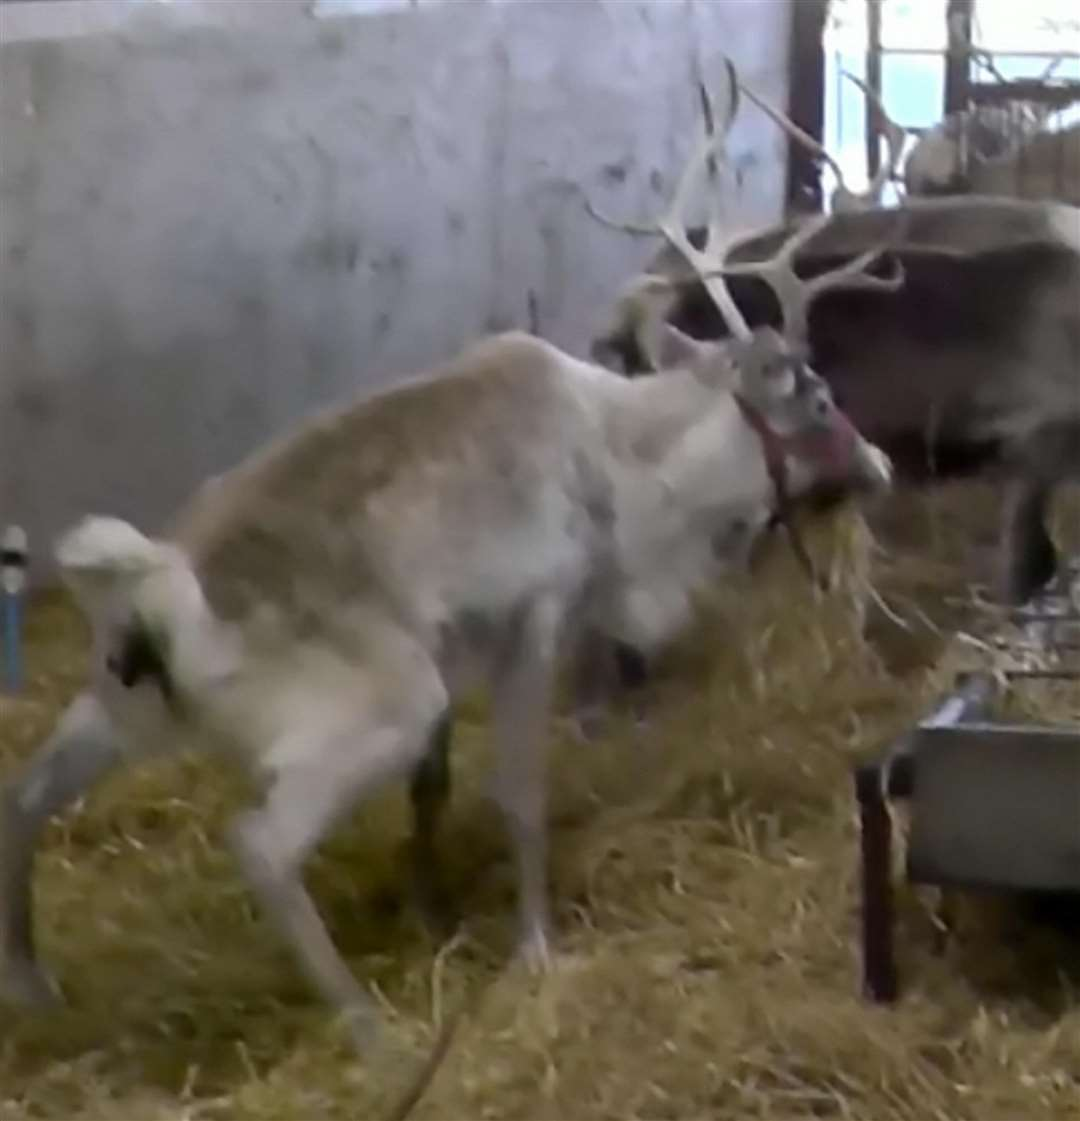 Reindeer at Kent Reindeer Centre, as seen in undercover footage captured by Animal Aid at UK farms. Picture: SWNS